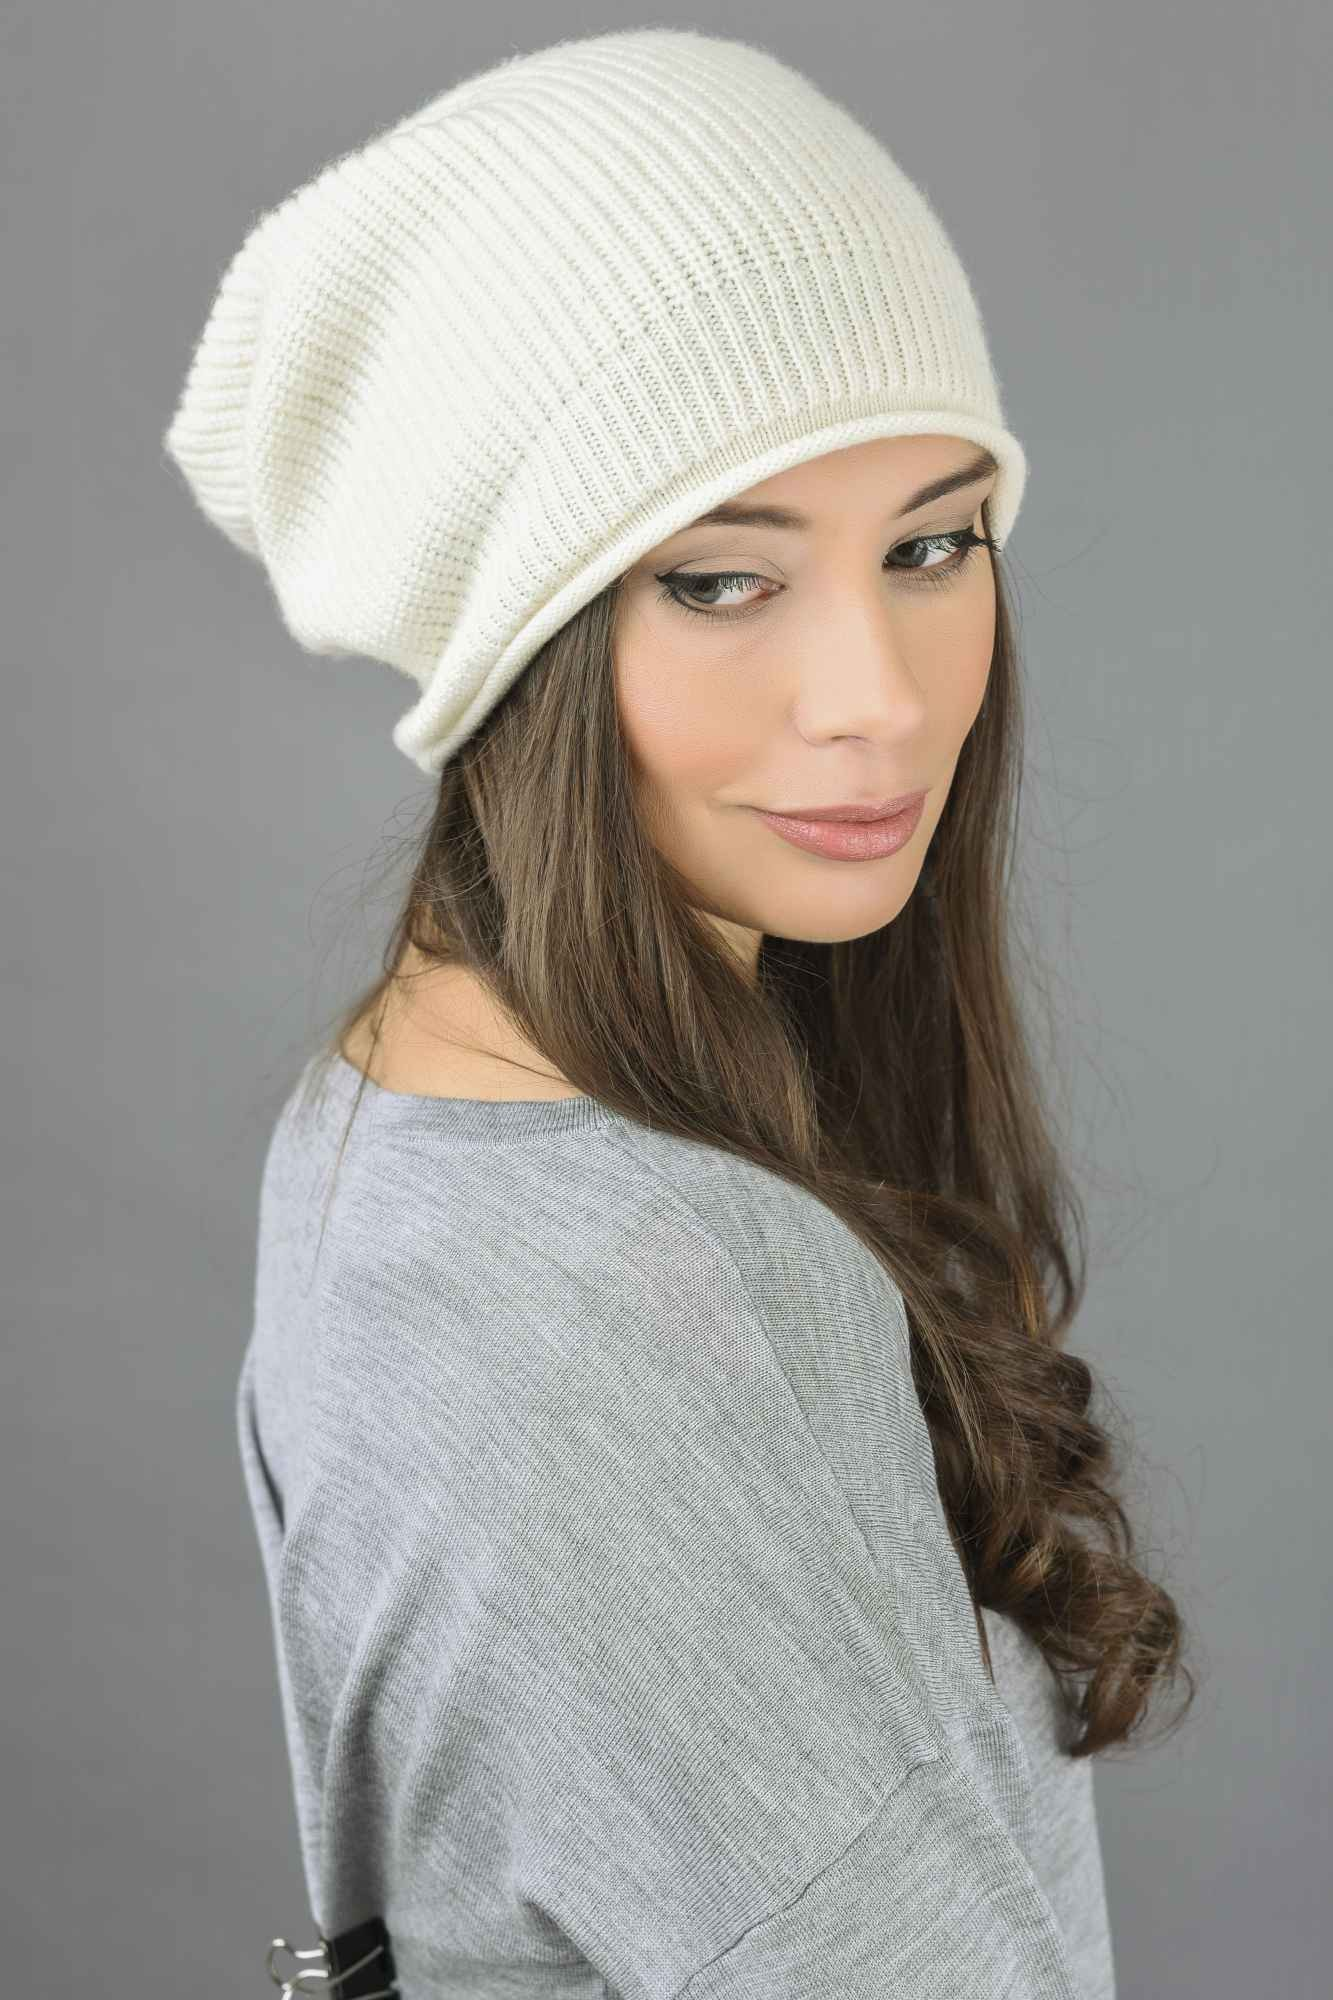 25d61a669 Pure Cashmere Ribbed Knitted Slouchy Beanie Hat in Cream White